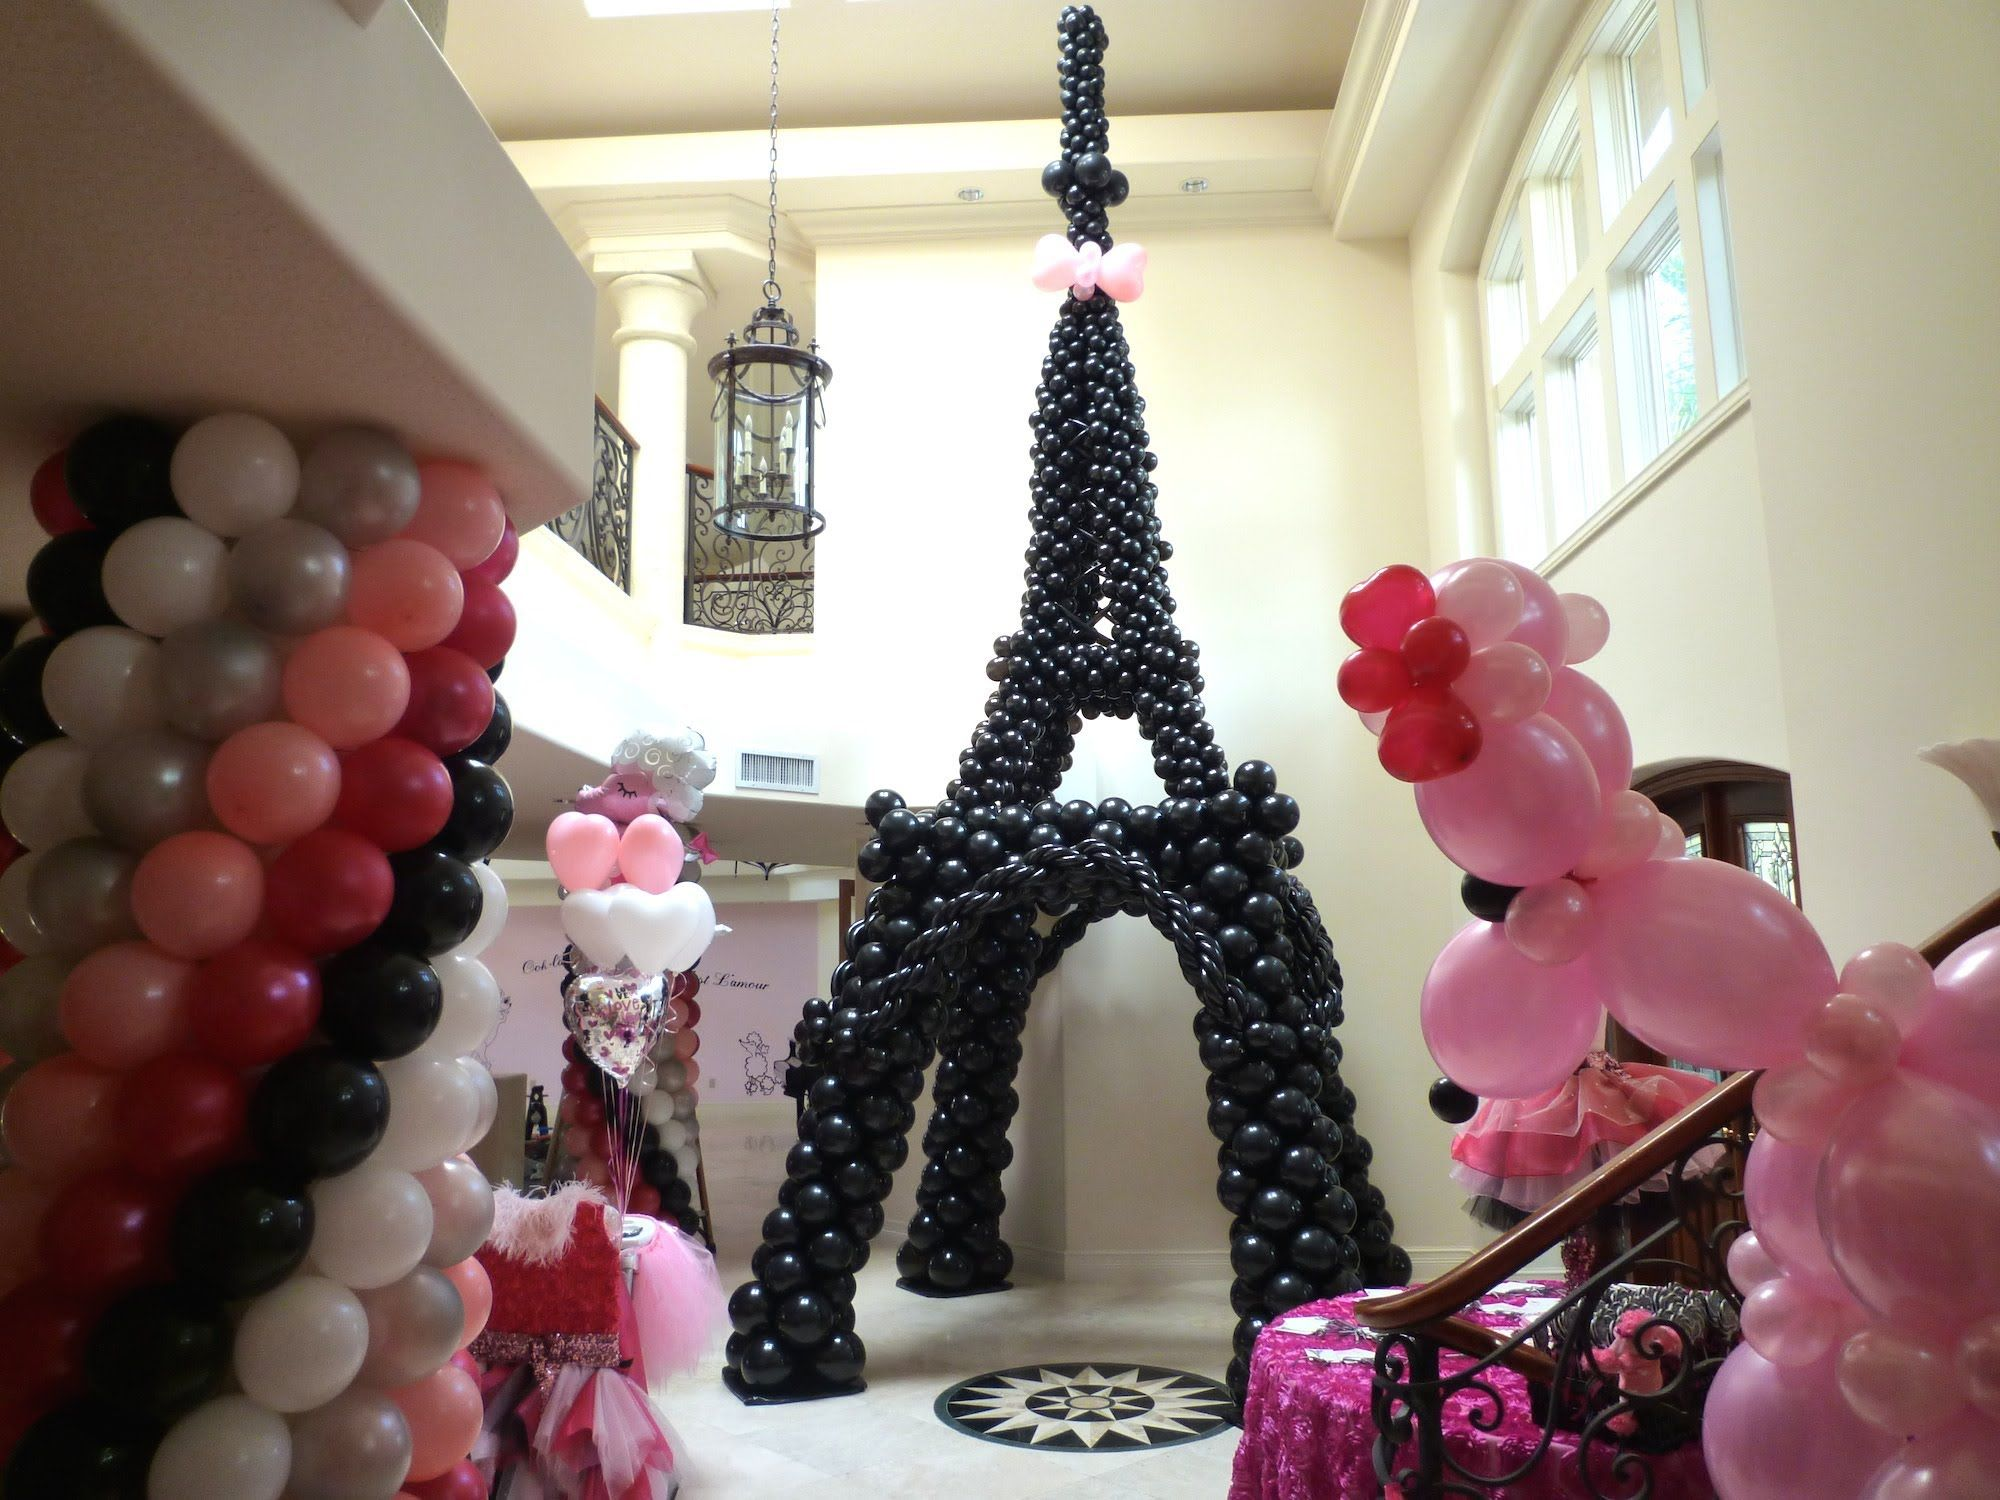 Paris Themed Party Decorating Ideas Part - 27: Pink Poodle In Paris Theme Birthday Party Decoration. Tall Balloon  Sculpture Of Tower In Paris. Many Different Balloon Decor And Dr.